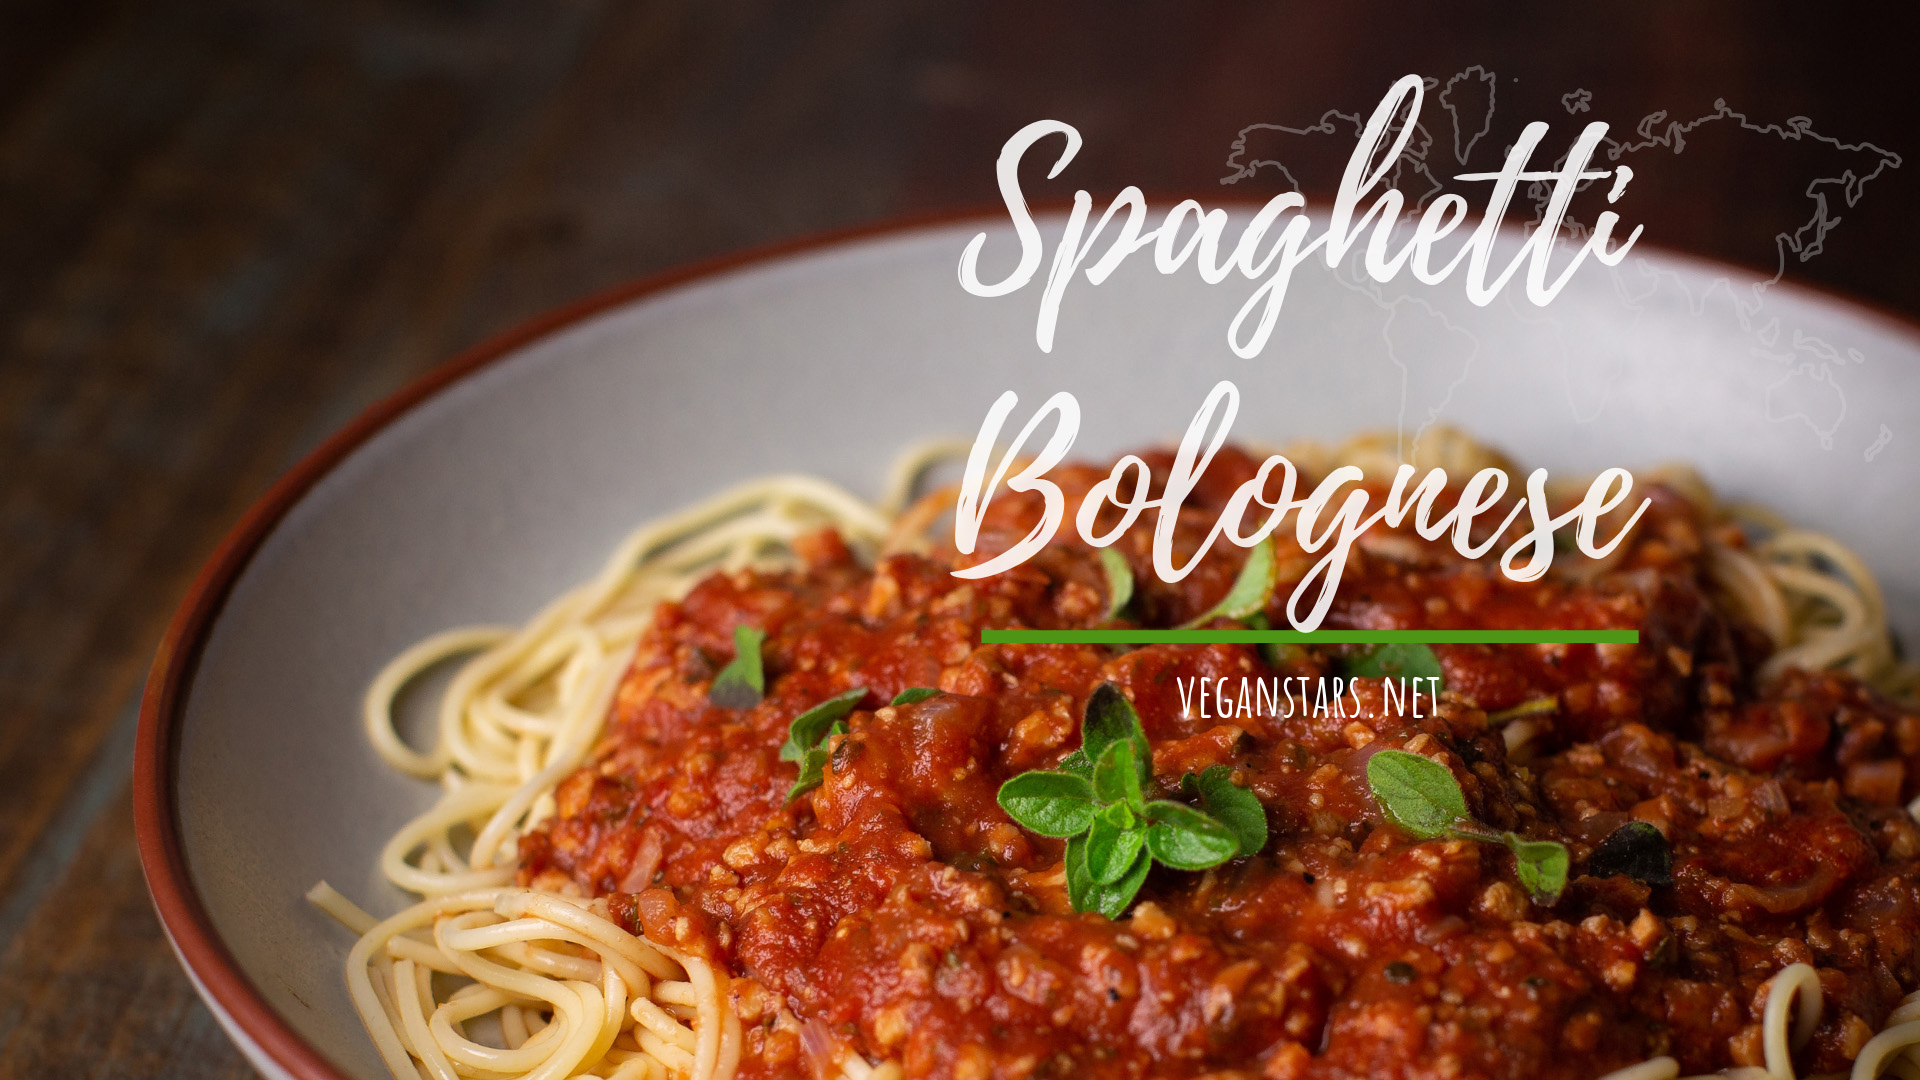 How to make Spaghetti Bolognese (vegan)